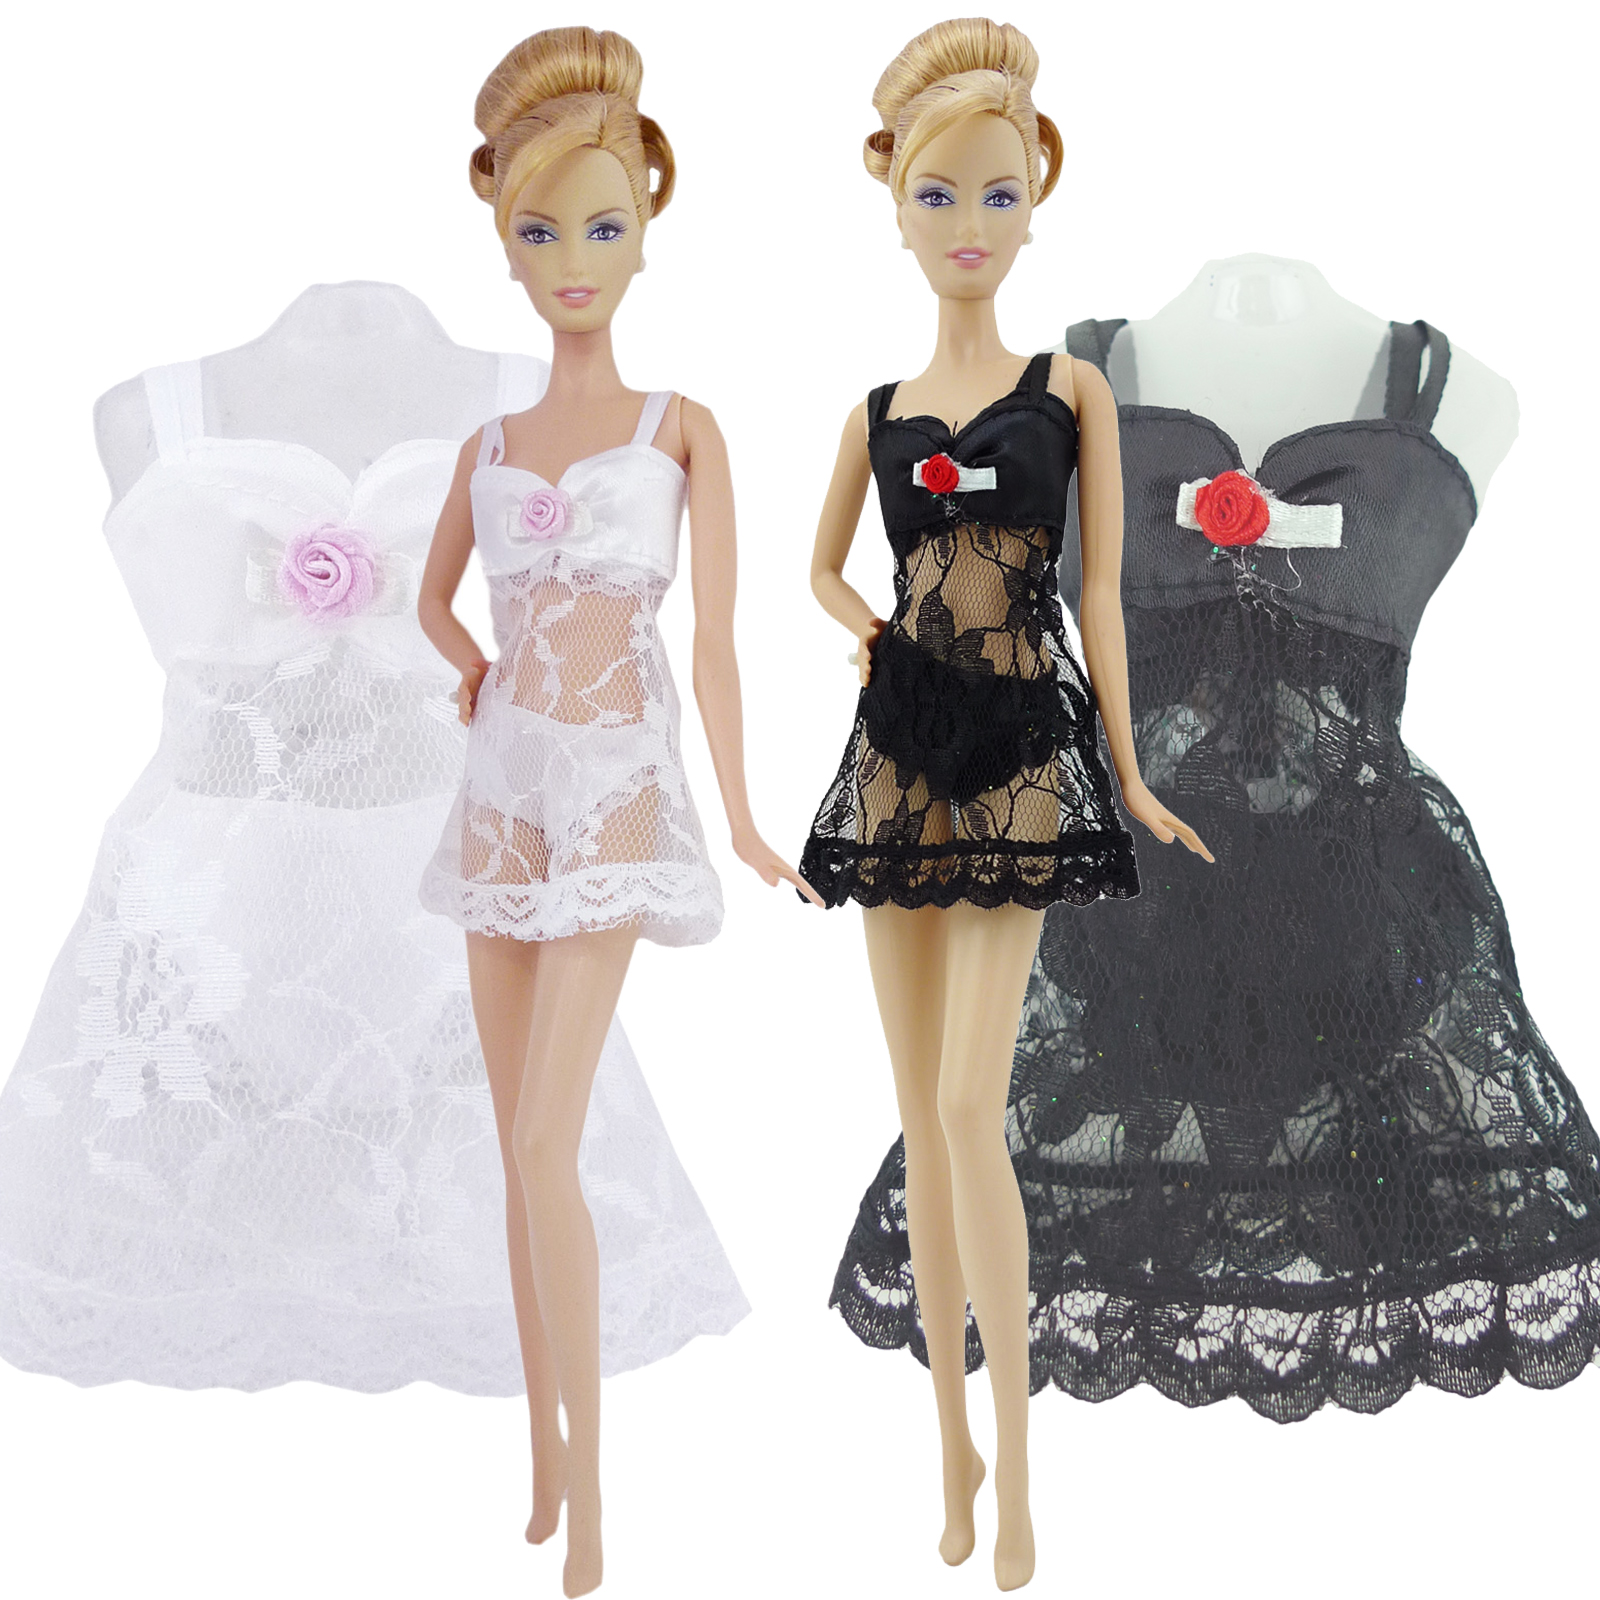 2 Set/Lot Handmade Doll Outfit For Barbie Doll Sexy Pajamas Underwear Black White Lace Doll Clothes Accessories Kids DIY Toy